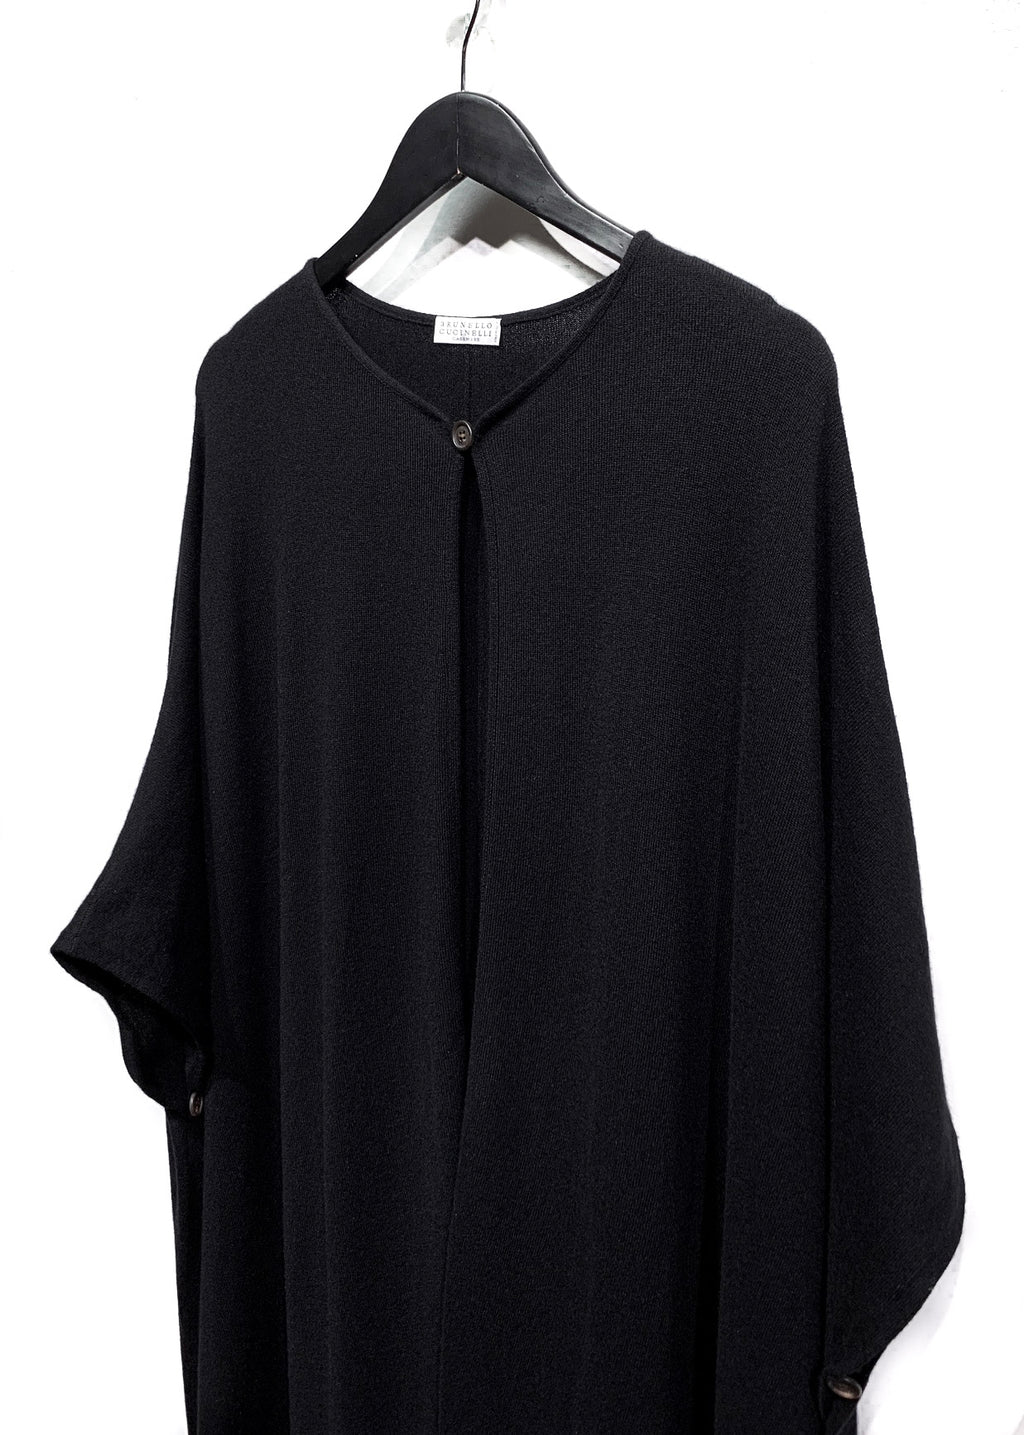 Brunello Cucinelli Black Cashmere Beaded Fringes Cape